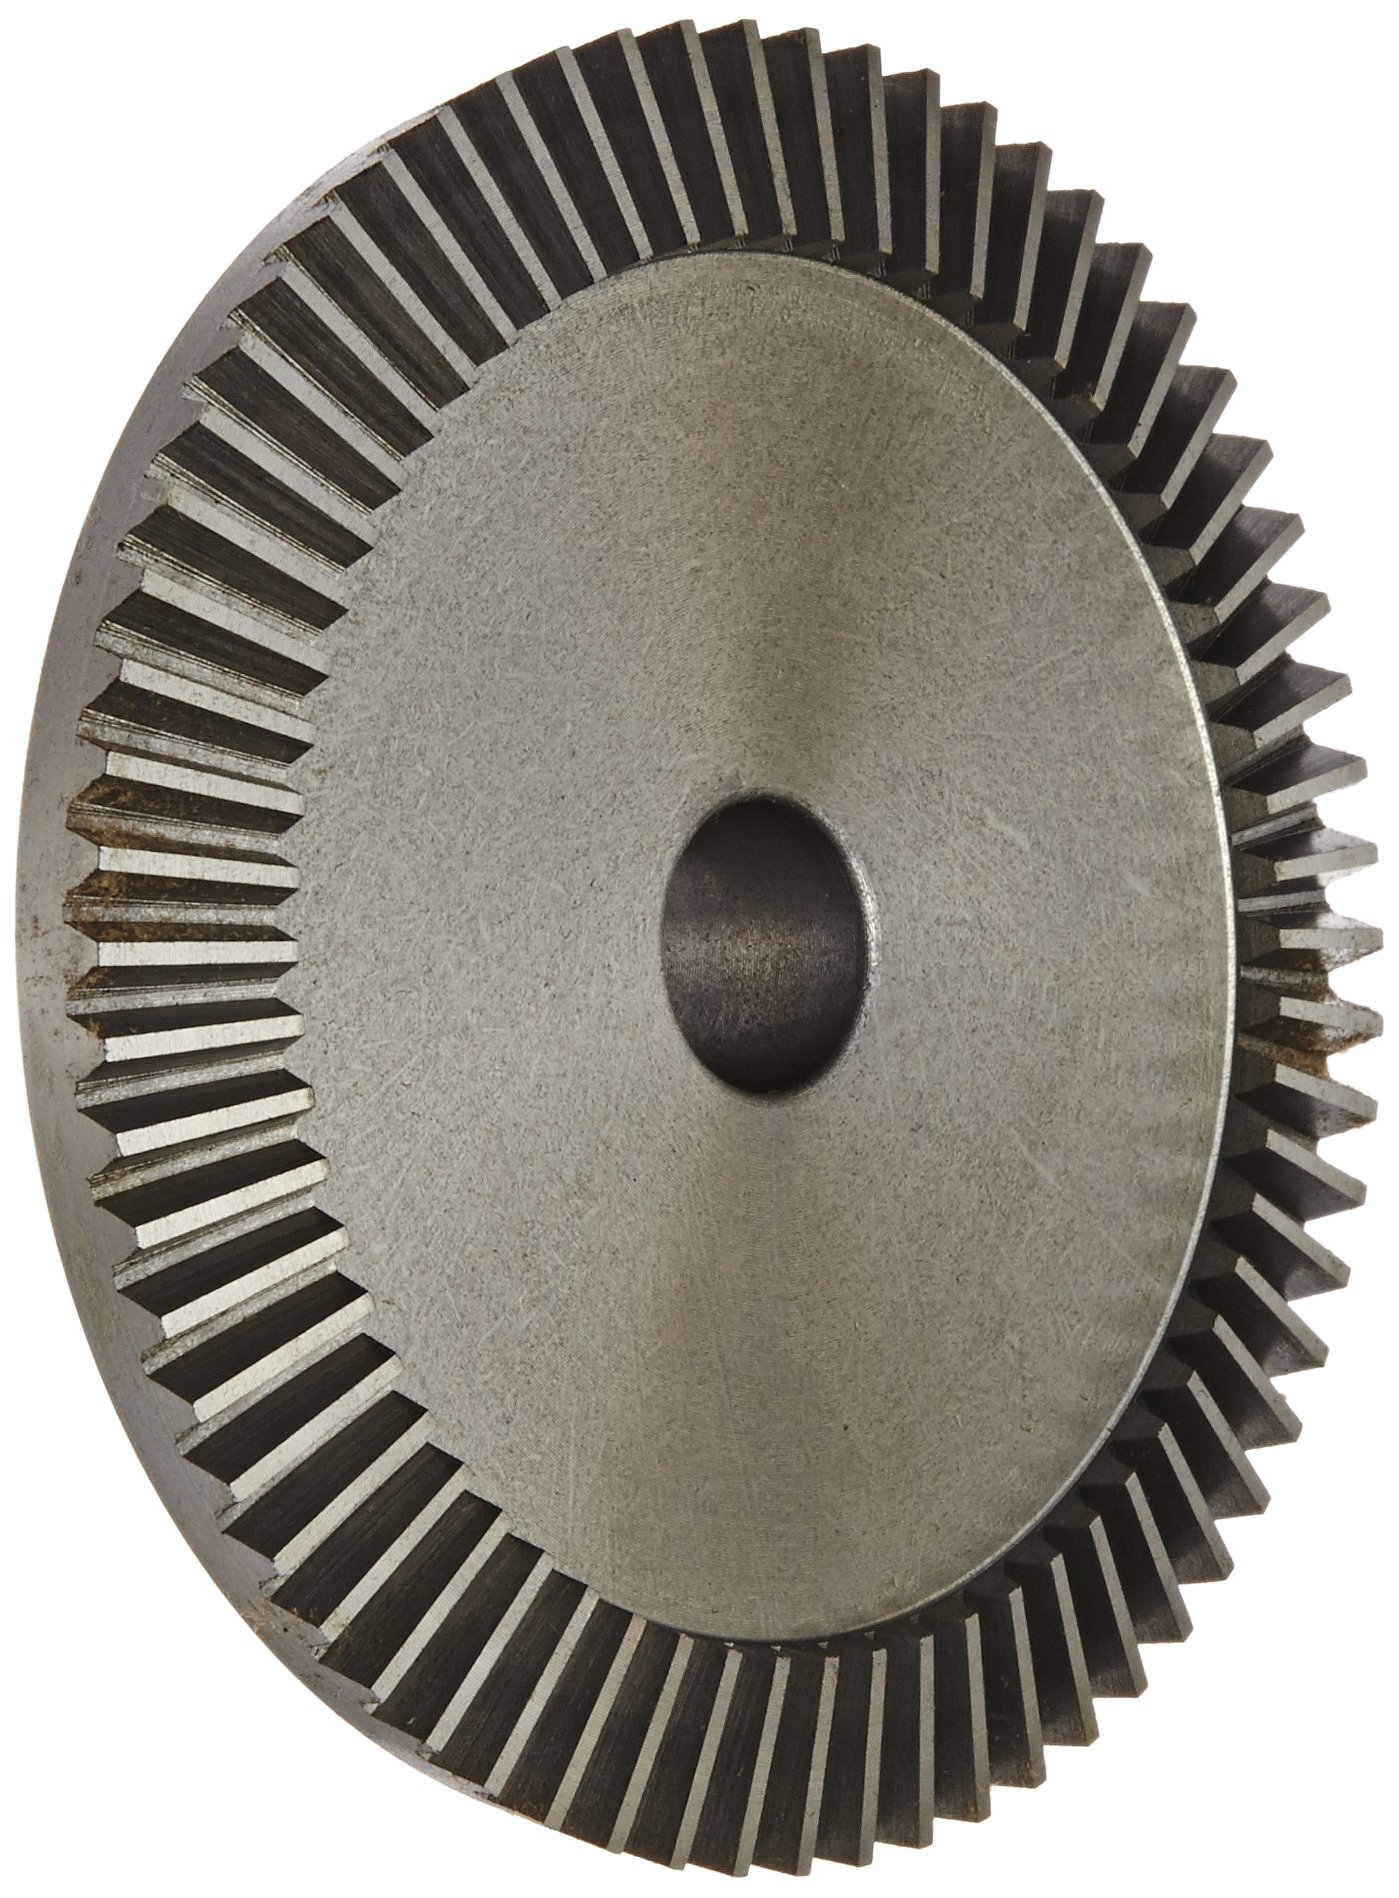 "Boston Gear PA4416Y-G Bevel Gear, 4:1 Ratio, 0.625"" Bore, 16 Pitch, 64 Teeth, 20 Degree Pressure Angle, Straight Bevel, Cast Iron"